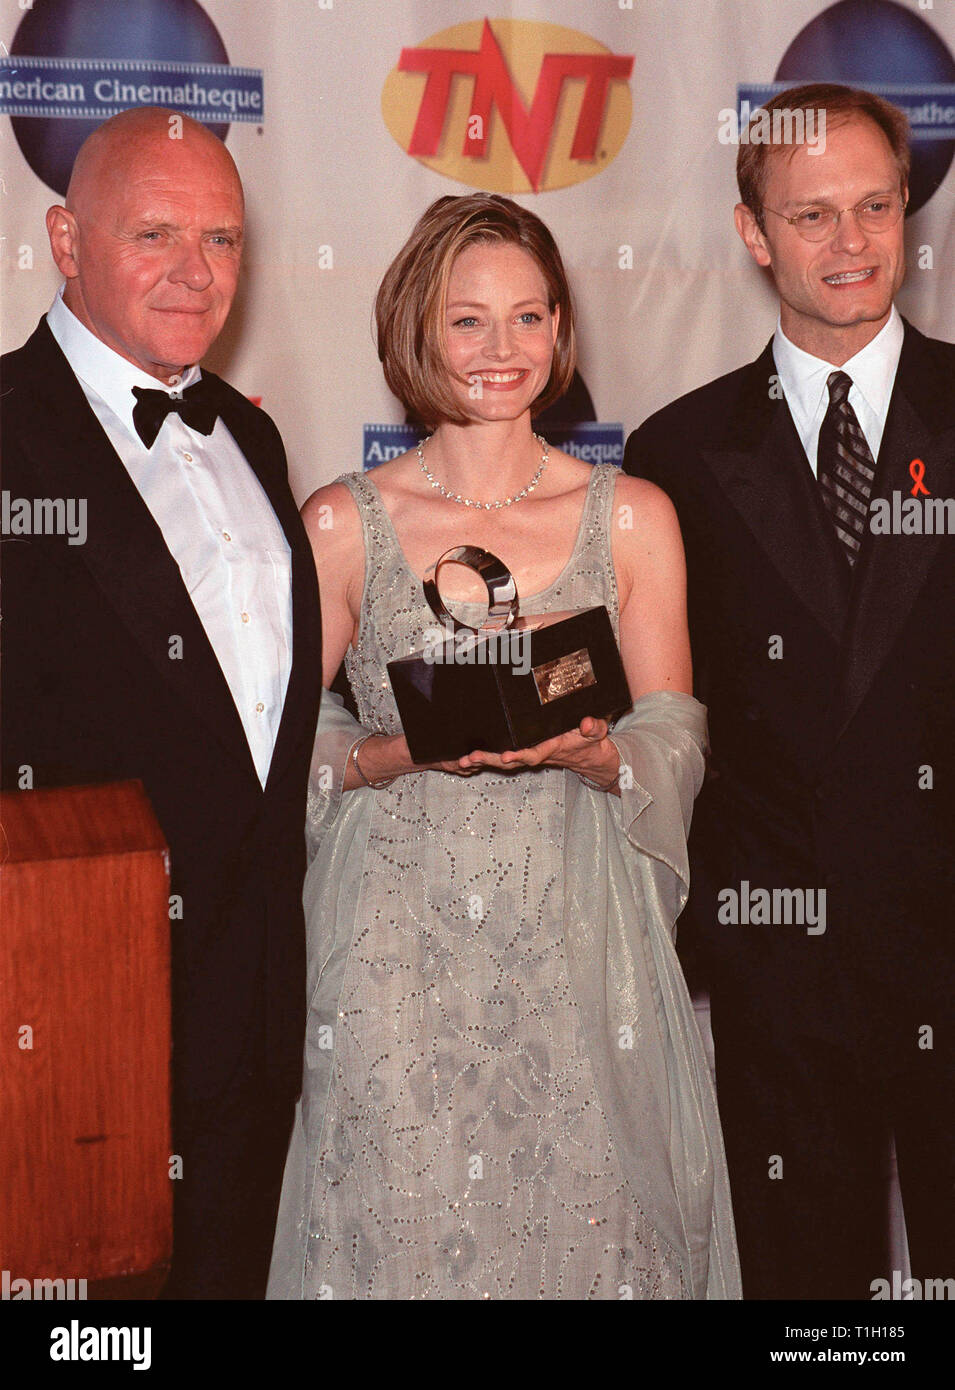 LOS ANGELES, CA. October 09, 1999:  Actors Anthony Hopkins (left) & David Hyde Pierce With Actress/director Jodie Foster at the 1999 American Cinematheque Moving Picture Ball at which she was honored. © Paul Smith / Featureflash - Stock Image